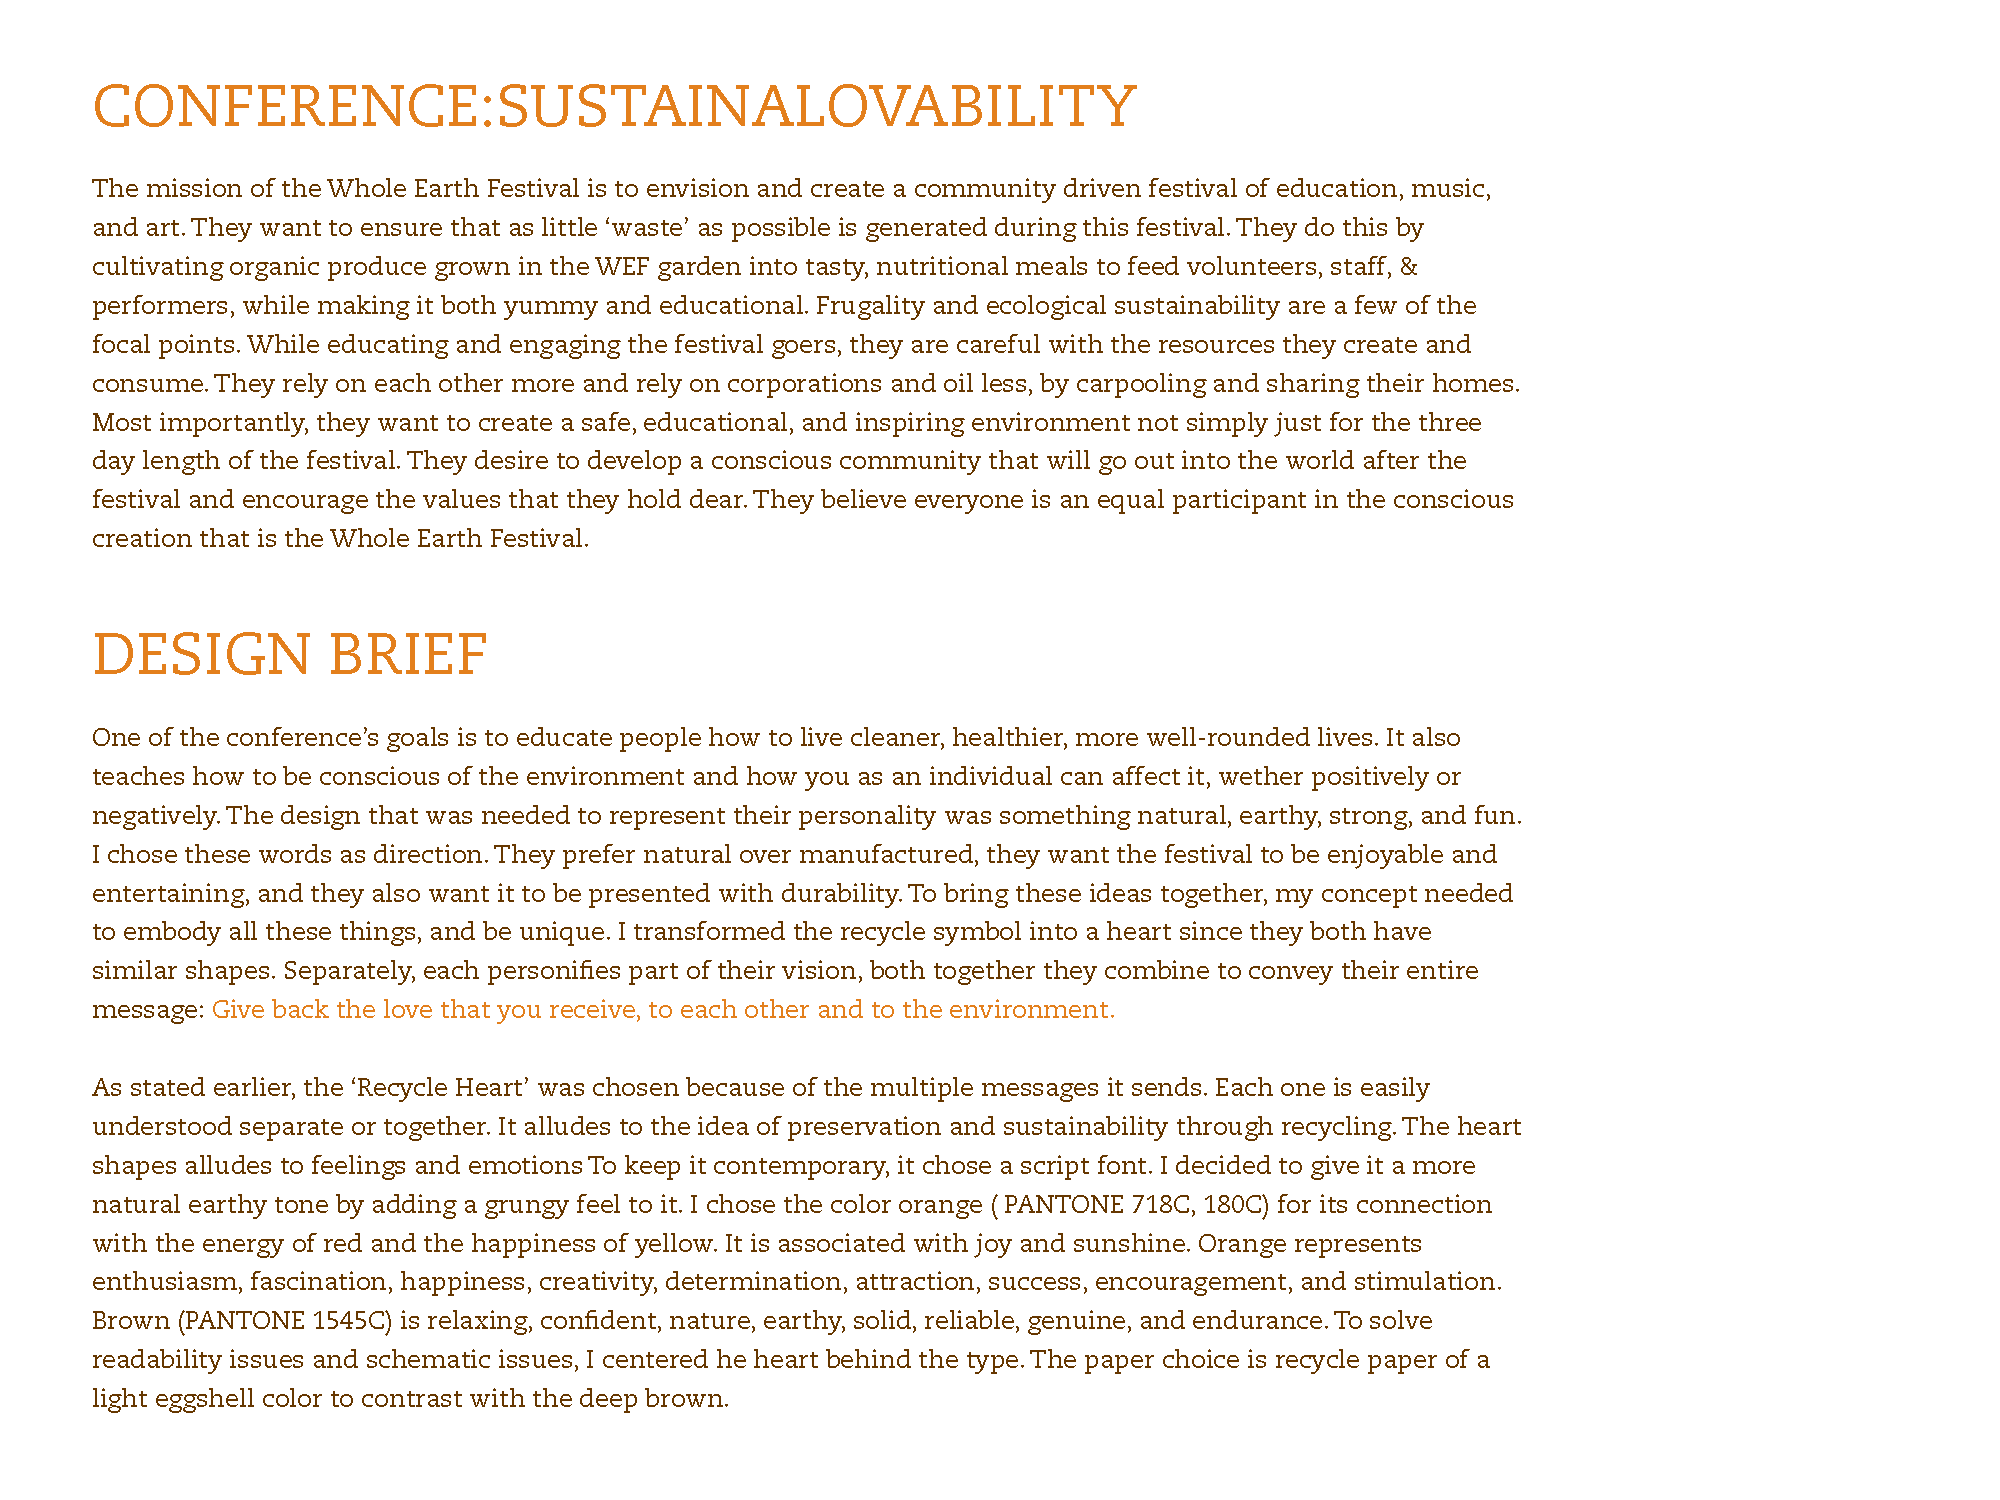 sustainalovability_identity copy_Page_02.png